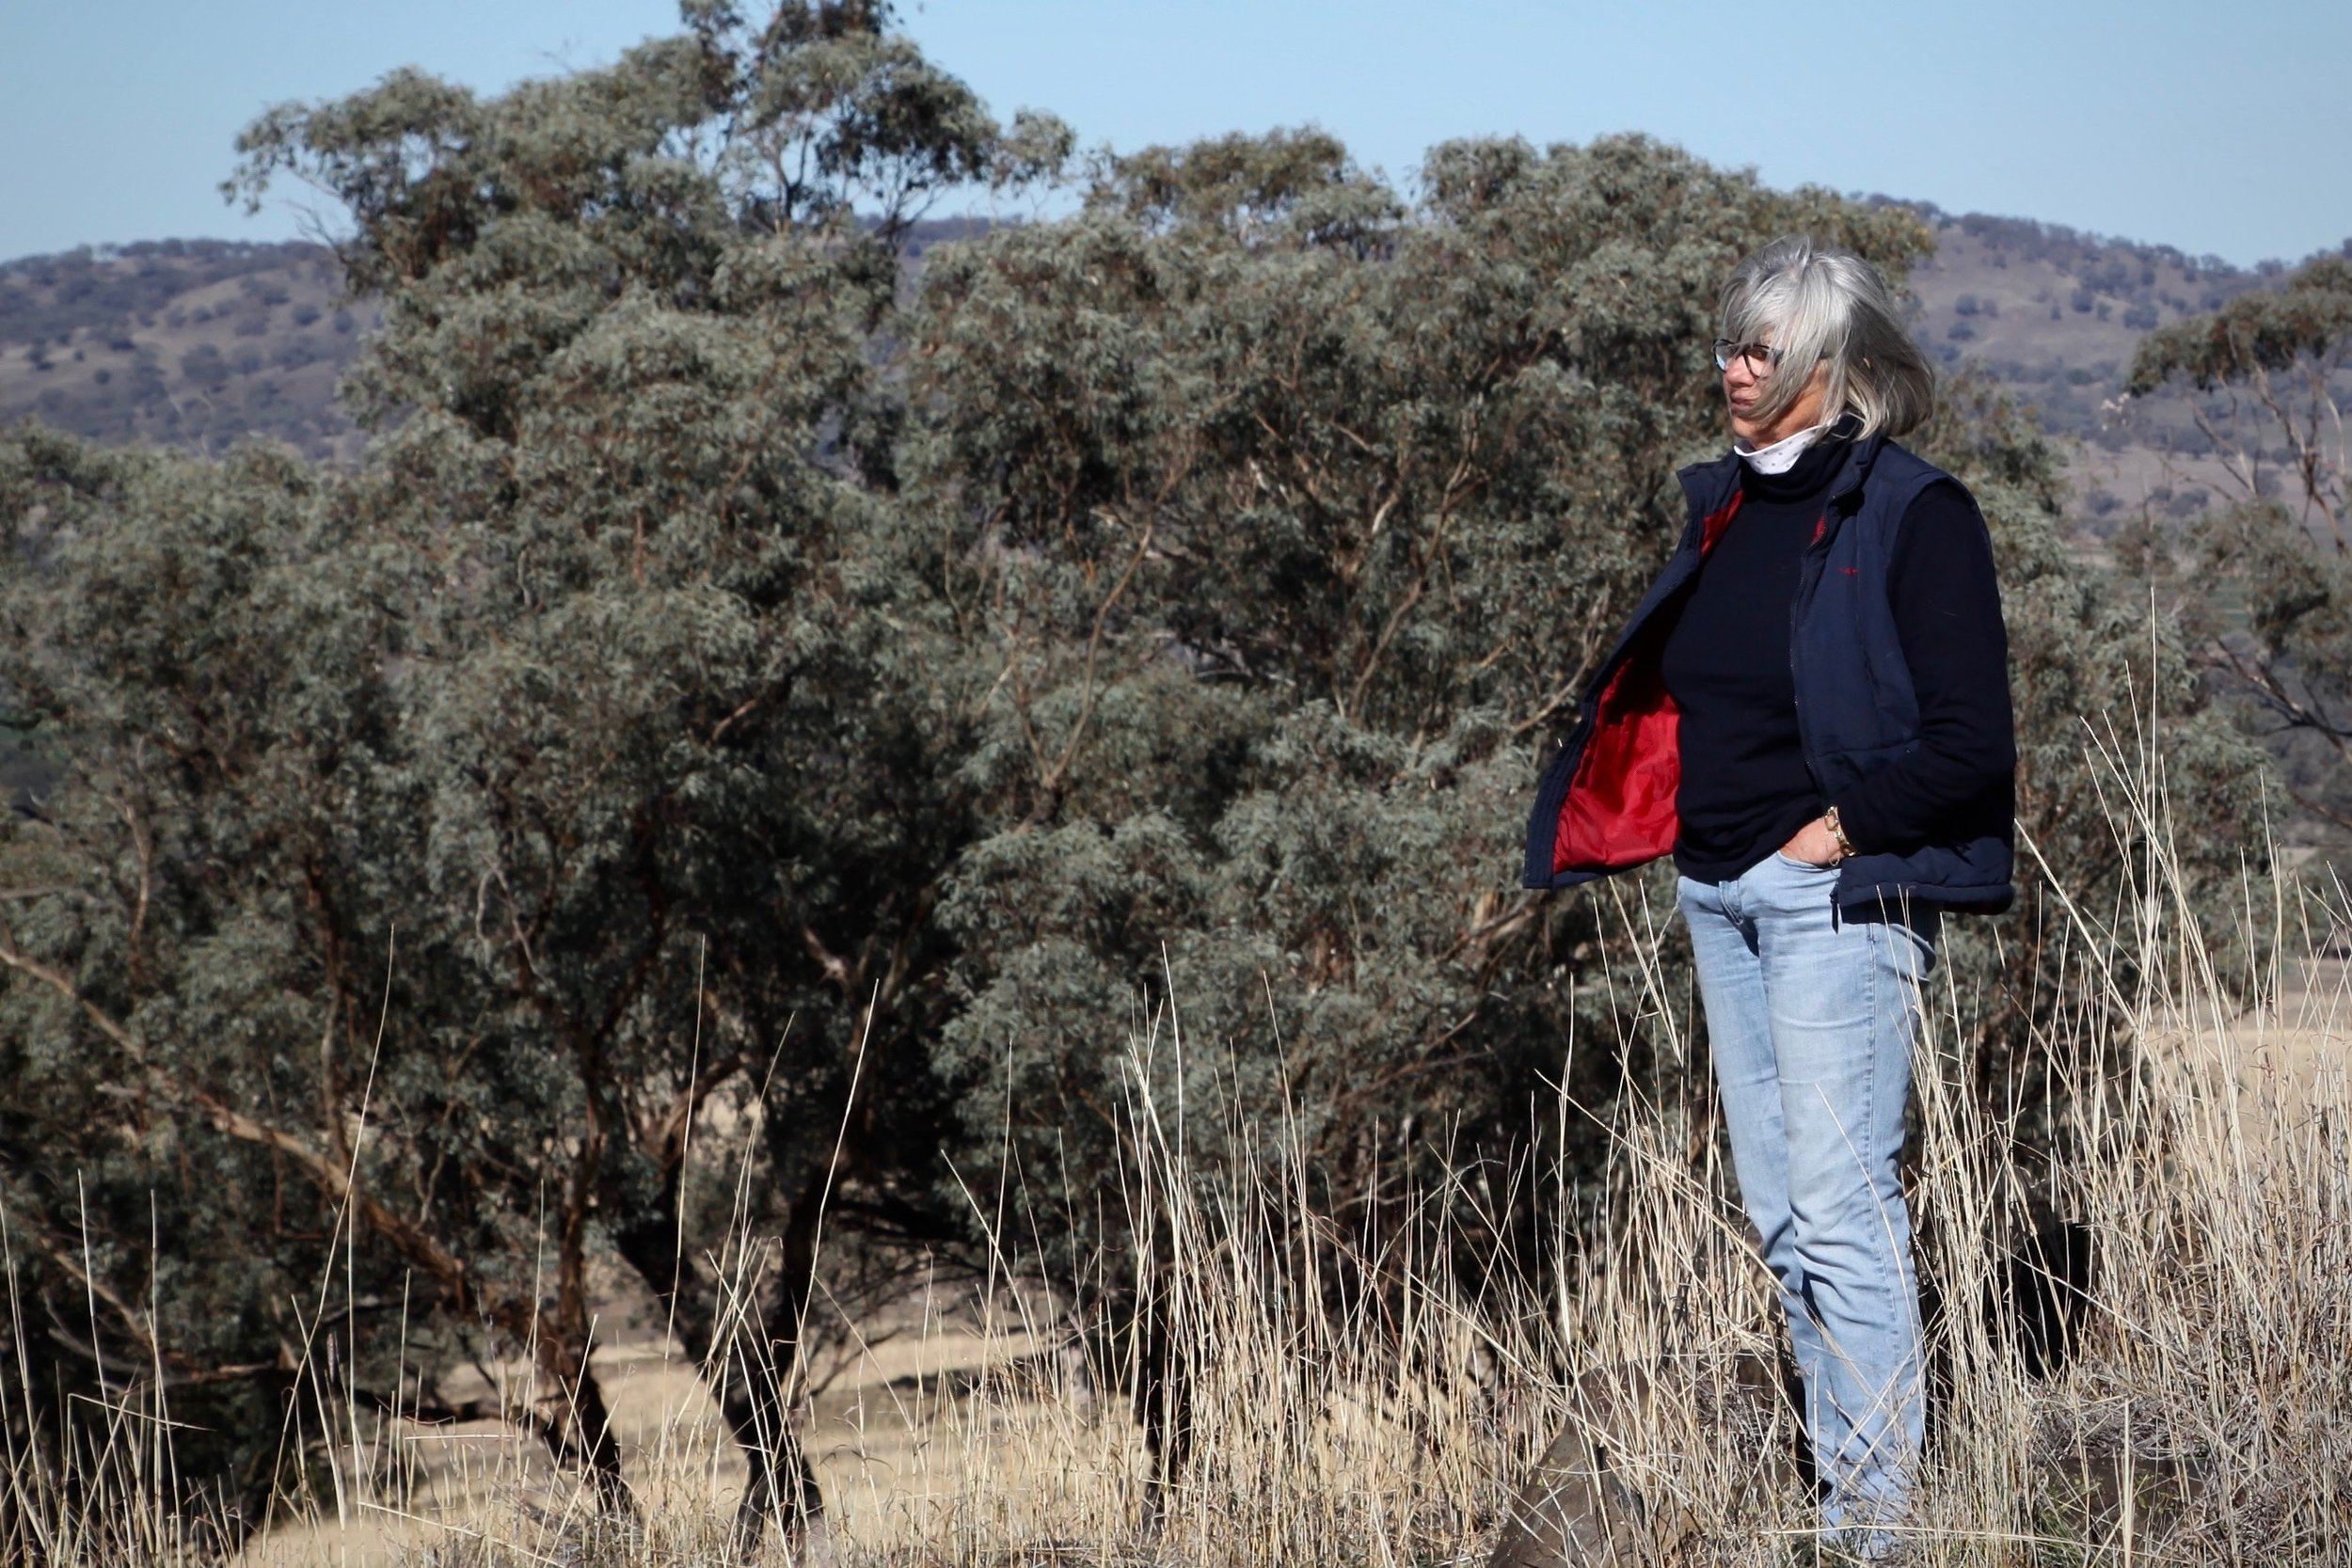 Rosemary Nankivellon the Liverpool Plains land that her family has farmed for generations.